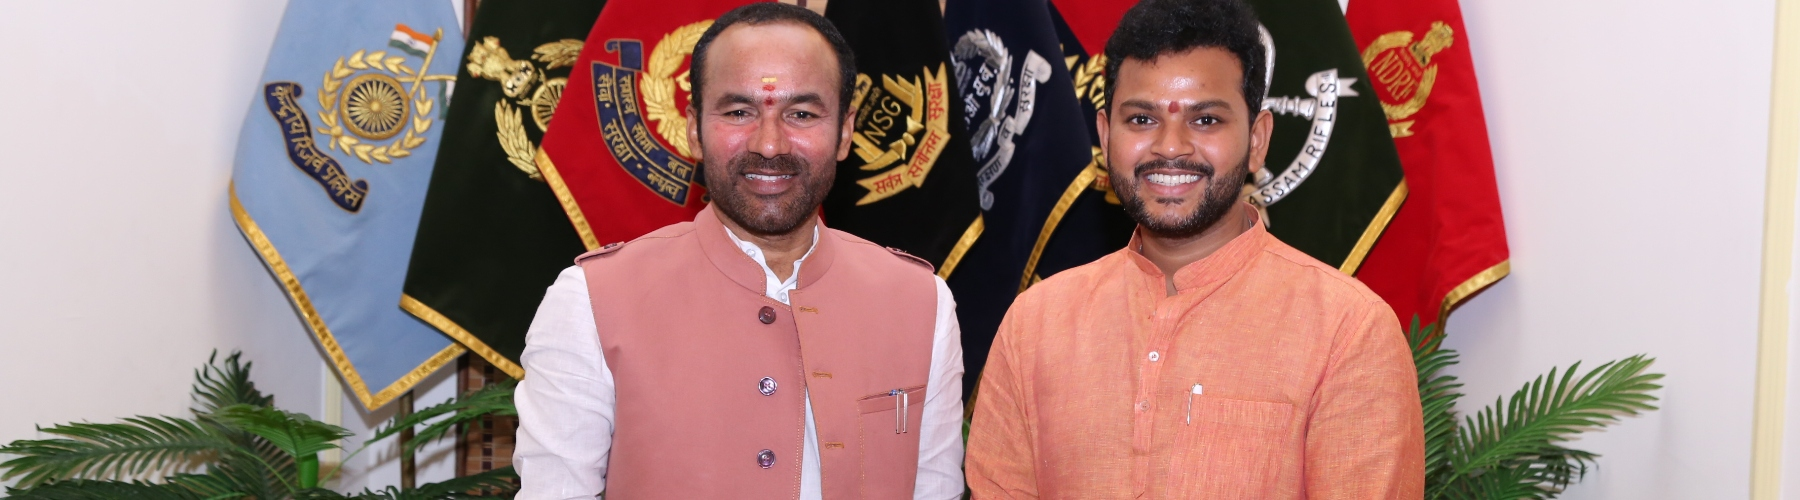 Member of Parliament Shri Mohan Naidu meets Union Minister of State or Home Affairs Shri G Kishan Reddy in New Delhi on 17th July, 2019.